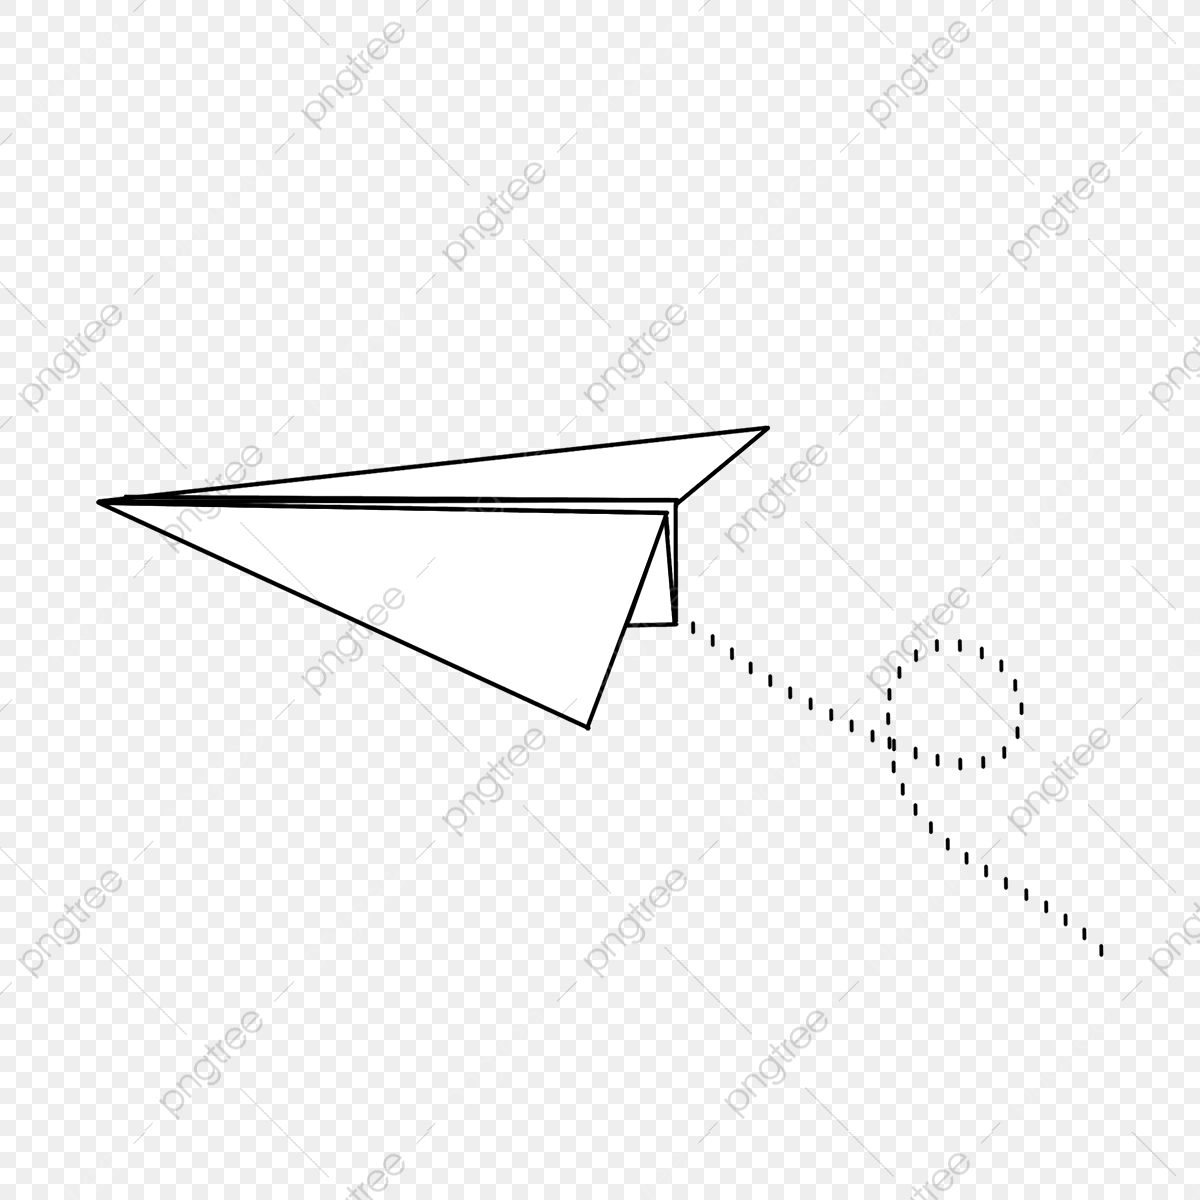 Smooth Flying Paper Airplane Clip Art Paper Plane Clipart Paper Plane Clipart Png Transparent Clipart Image And Psd File For Free Download